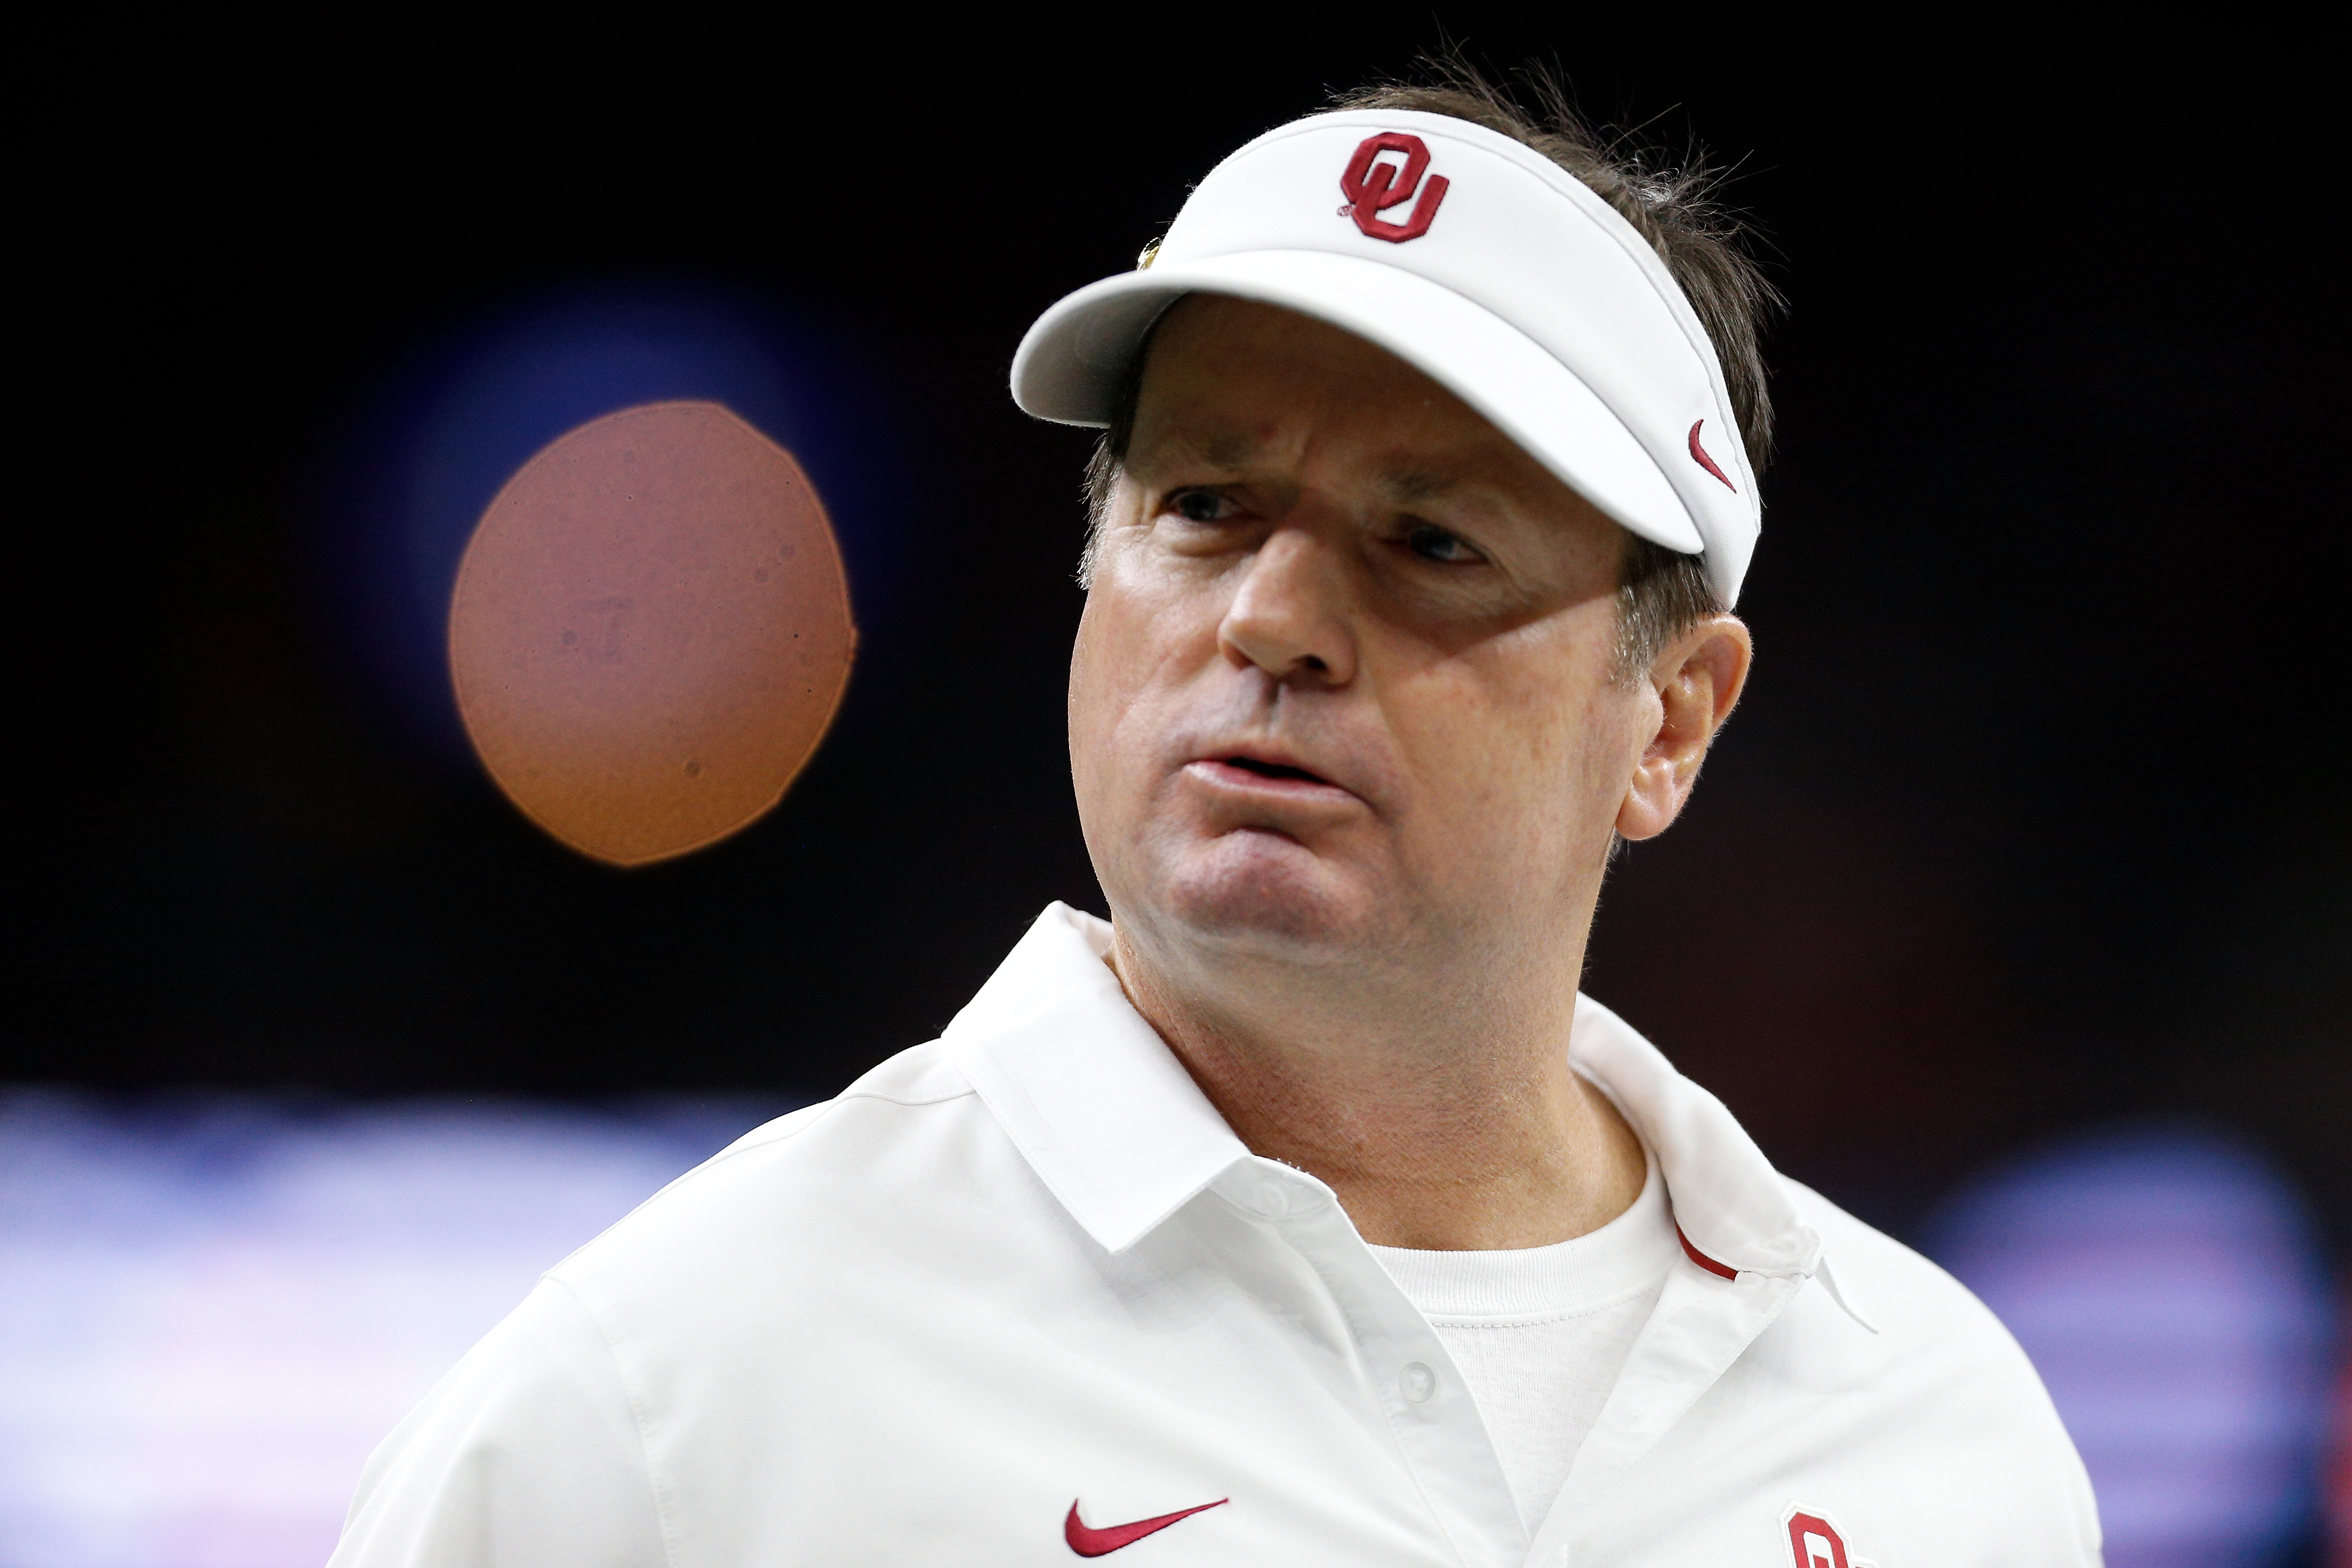 Bob Stoops retires at Oklahoma